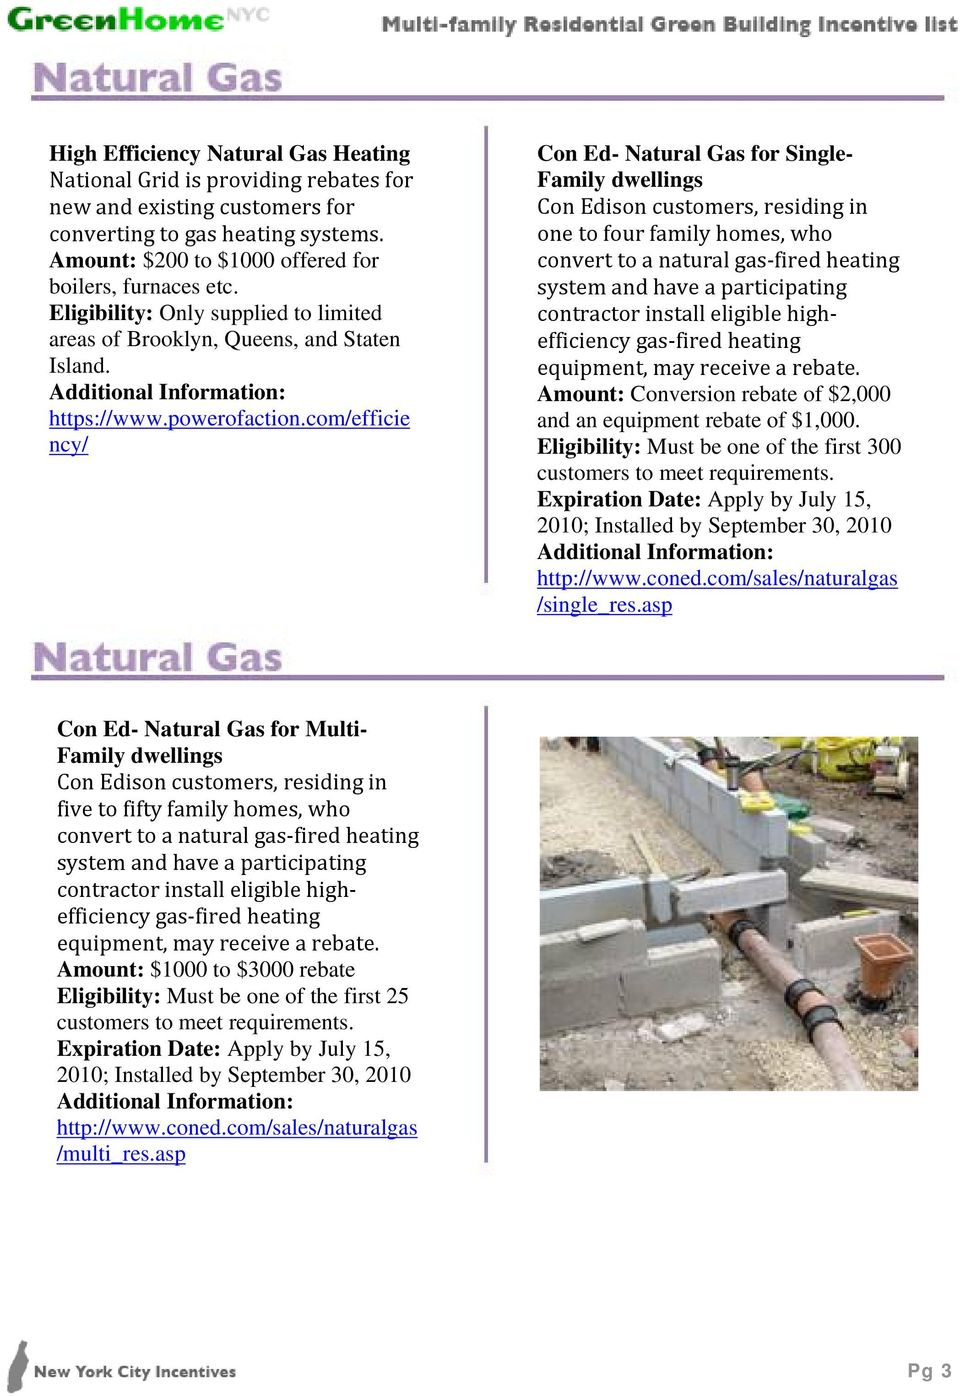 com/efficie ncy/ Con Ed- Natural Gas for Single- Family dwellings Con Edison customers, residing in one to four family homes, who convert to a natural gas fired heating system and have a